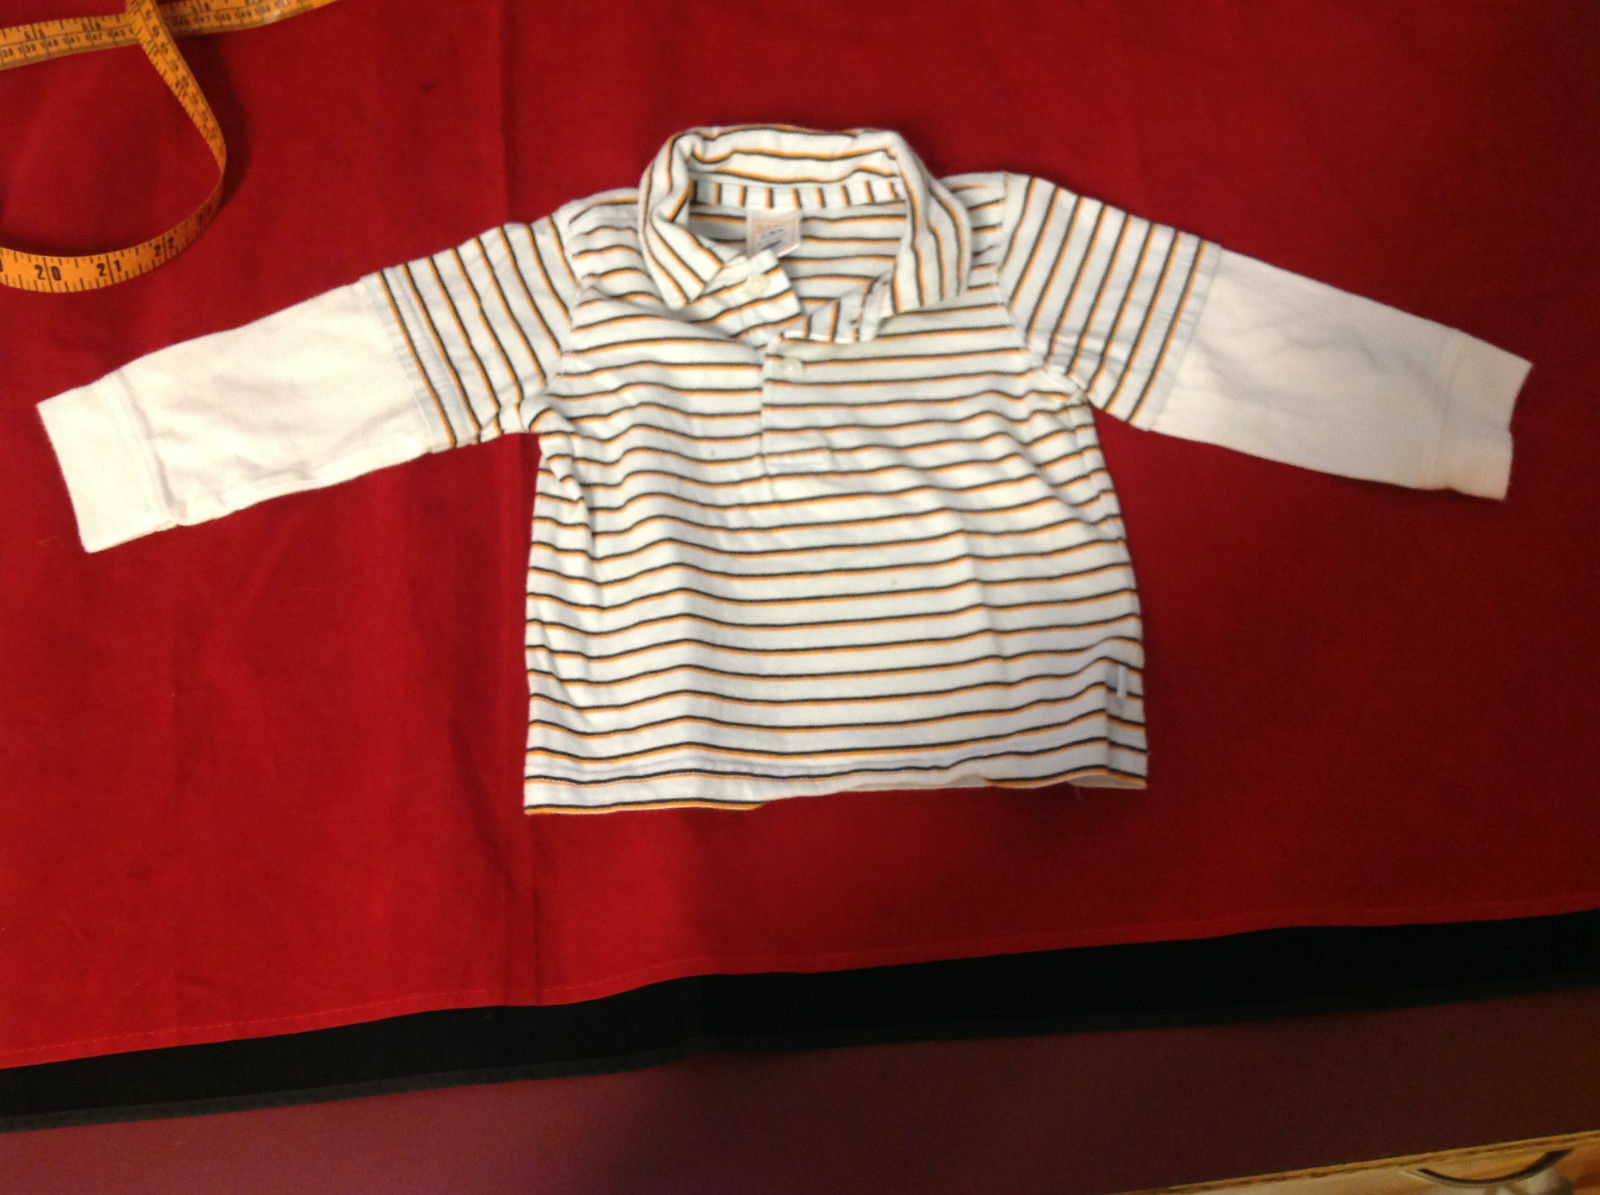 Old Navy Long Sleeve White/Light Blue/Orange Colored Shirt Size 6 to 12 Months